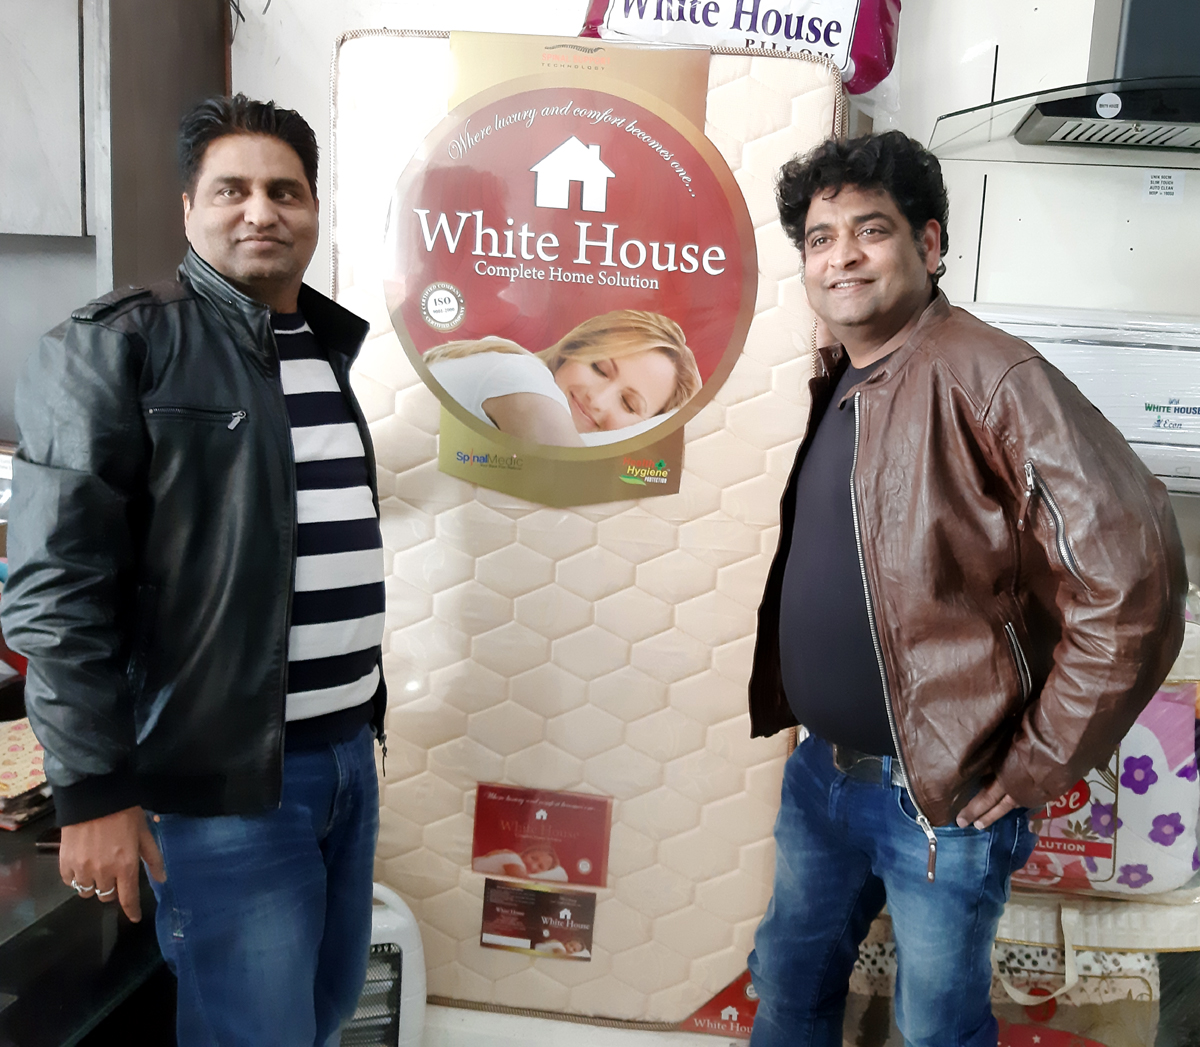 Executives of 'White House' during the launch of new mattress in Jammu.